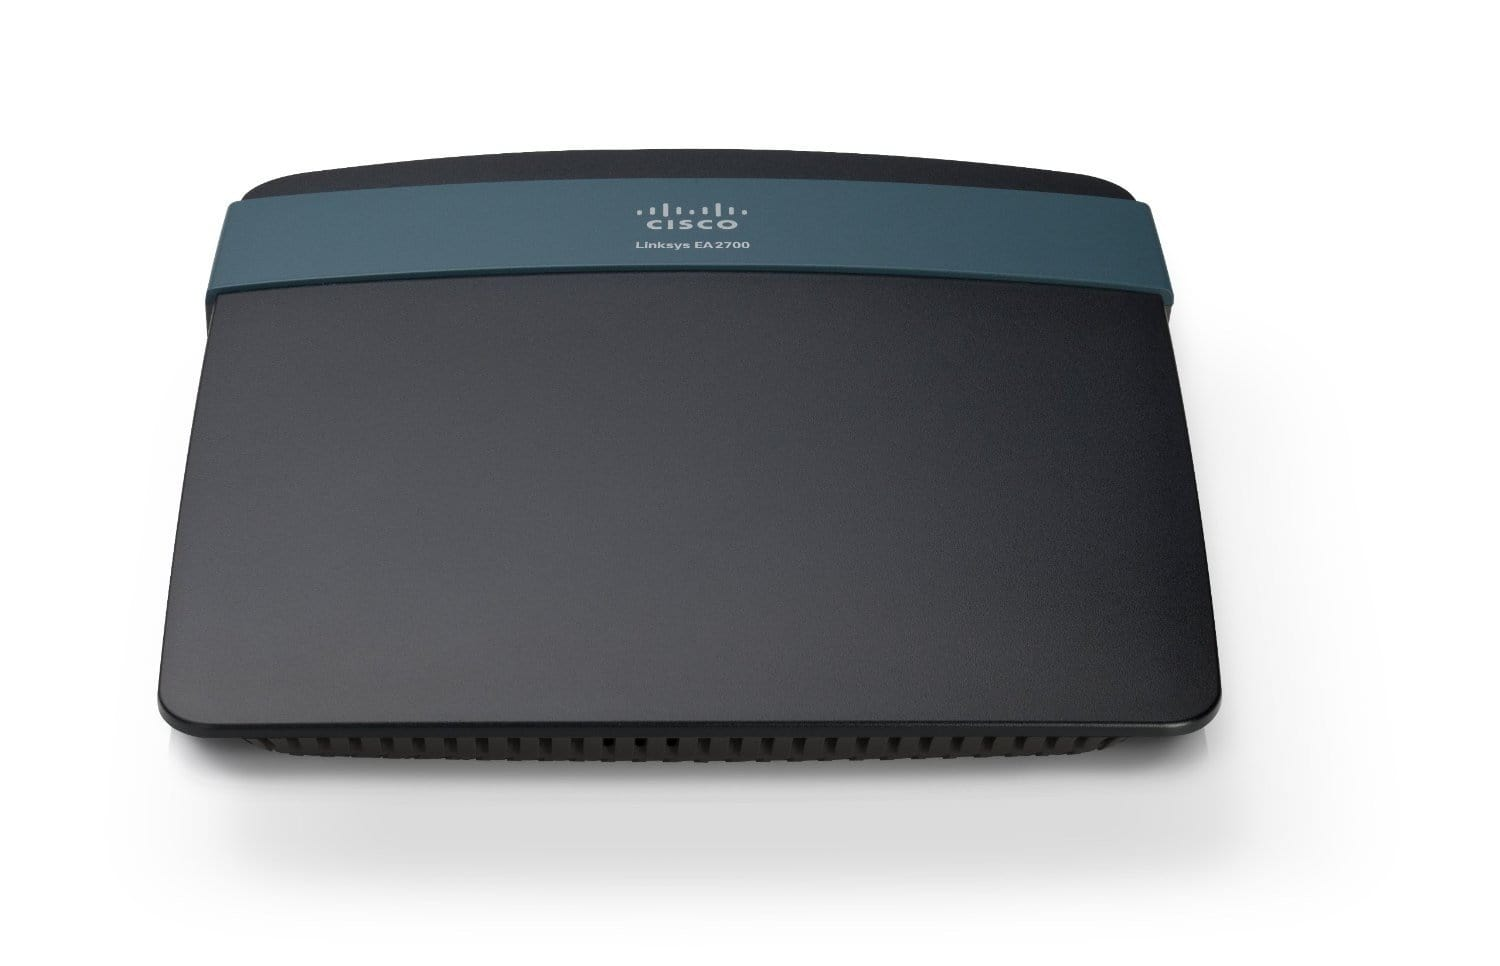 Linksys EA2700 N600 Dual-Band Smart Wi-Fi Wireless Router